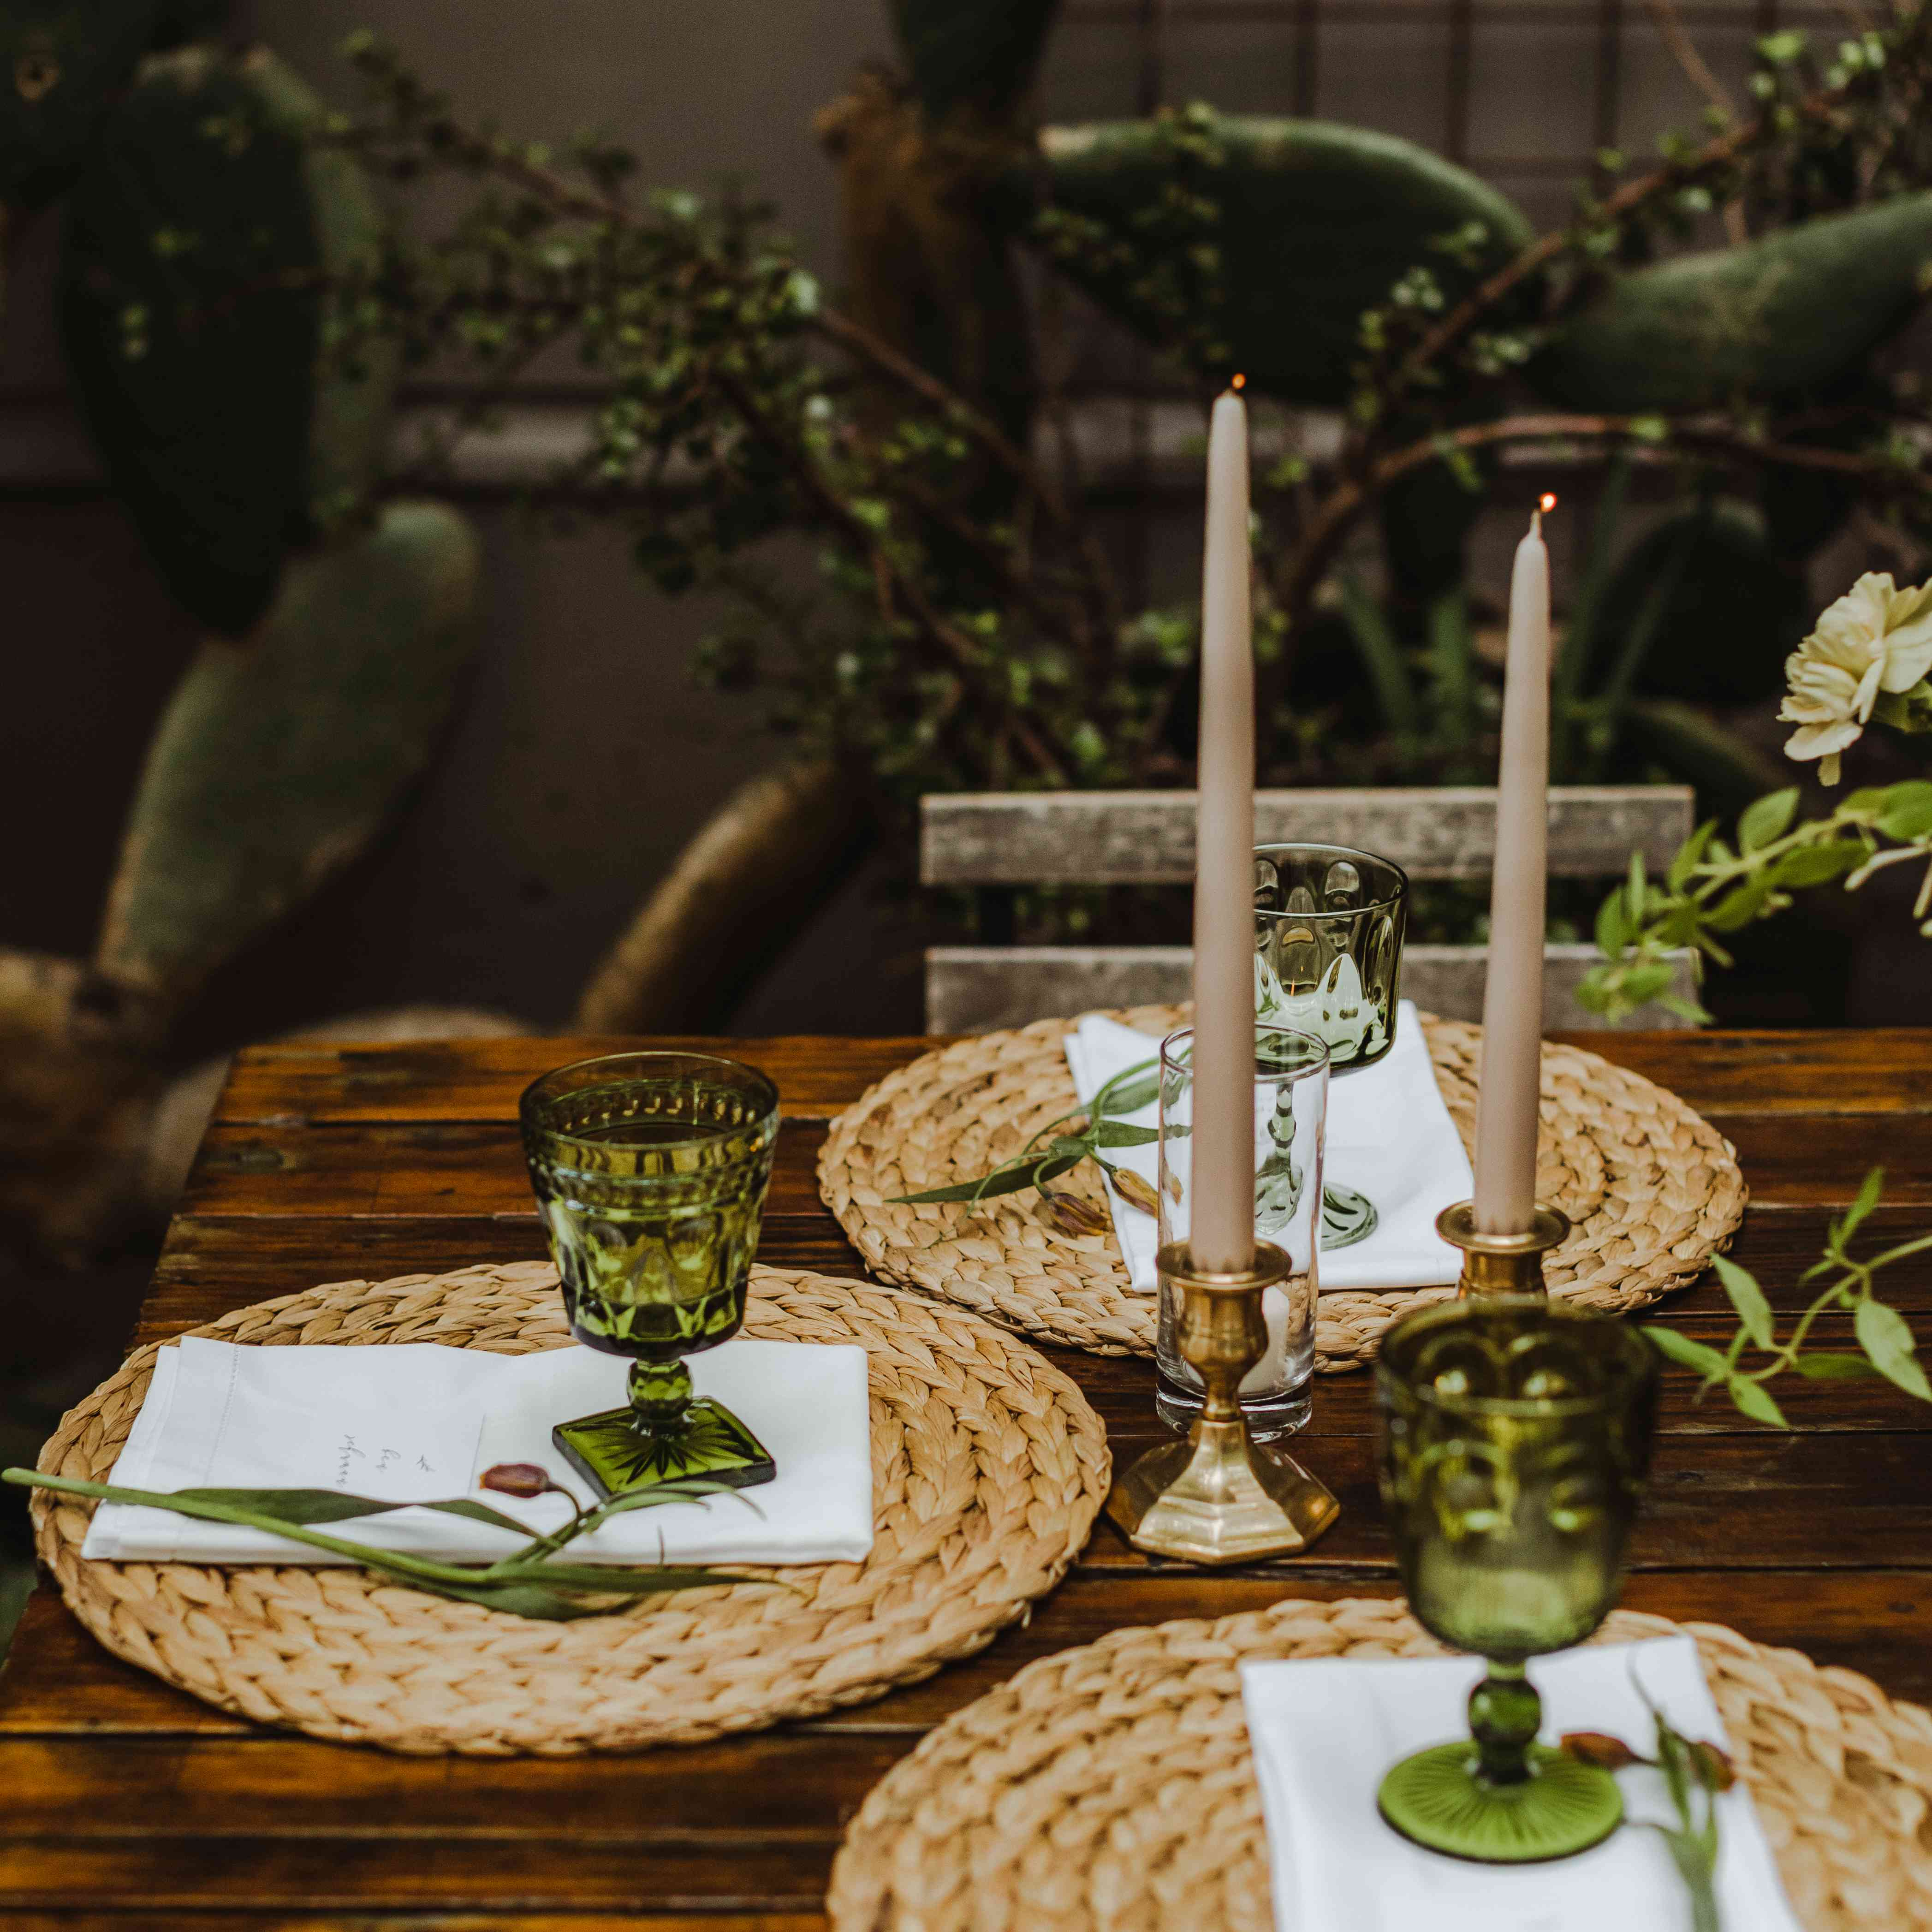 <p>Place setting with candles</p><br><br>